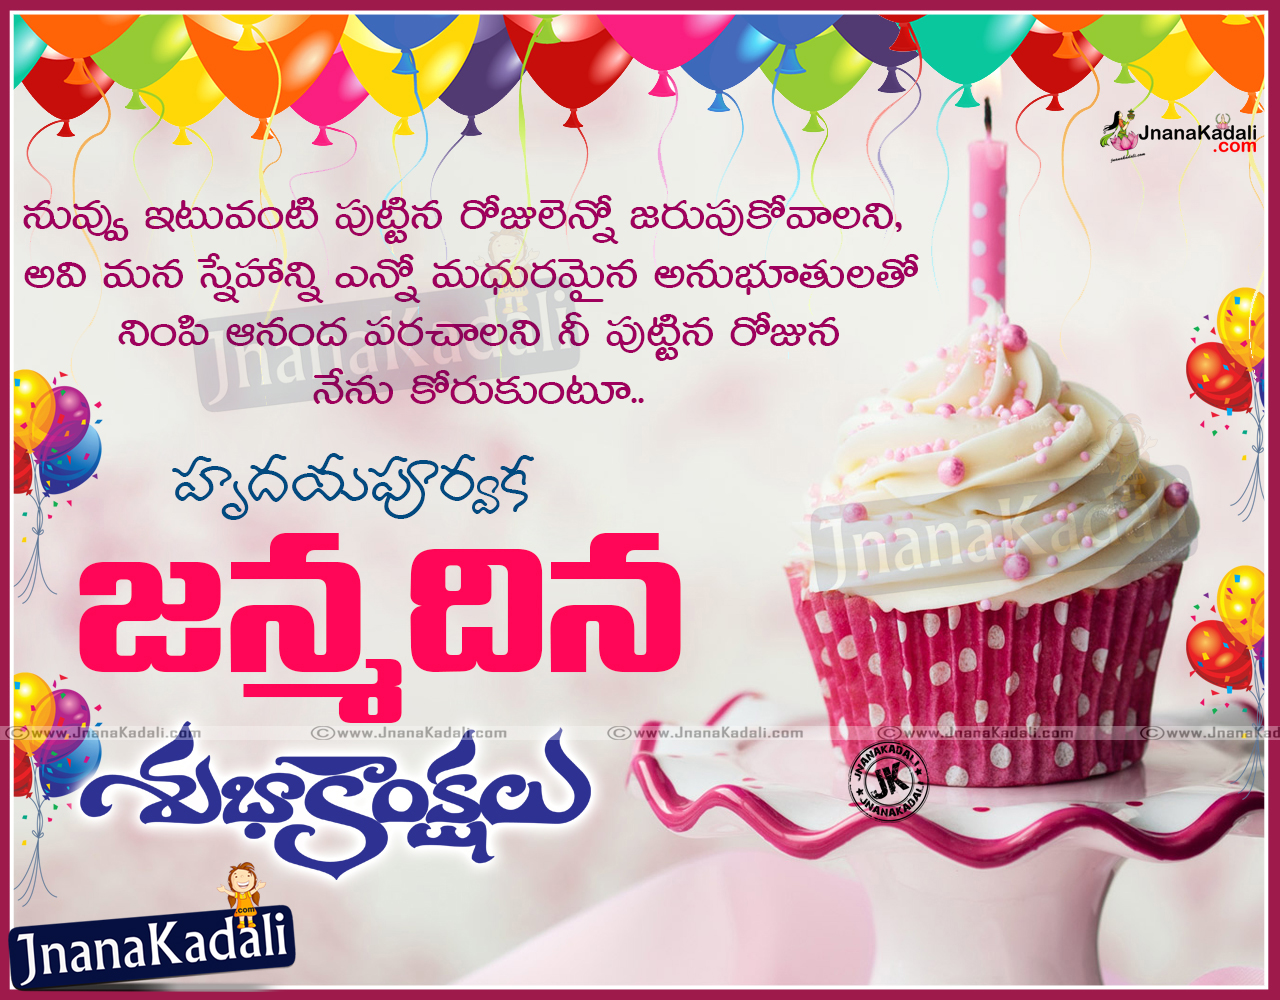 Birthday wishes greetings quotes wallpapers in telugu with Telugu – Telugu Birthday Greetings